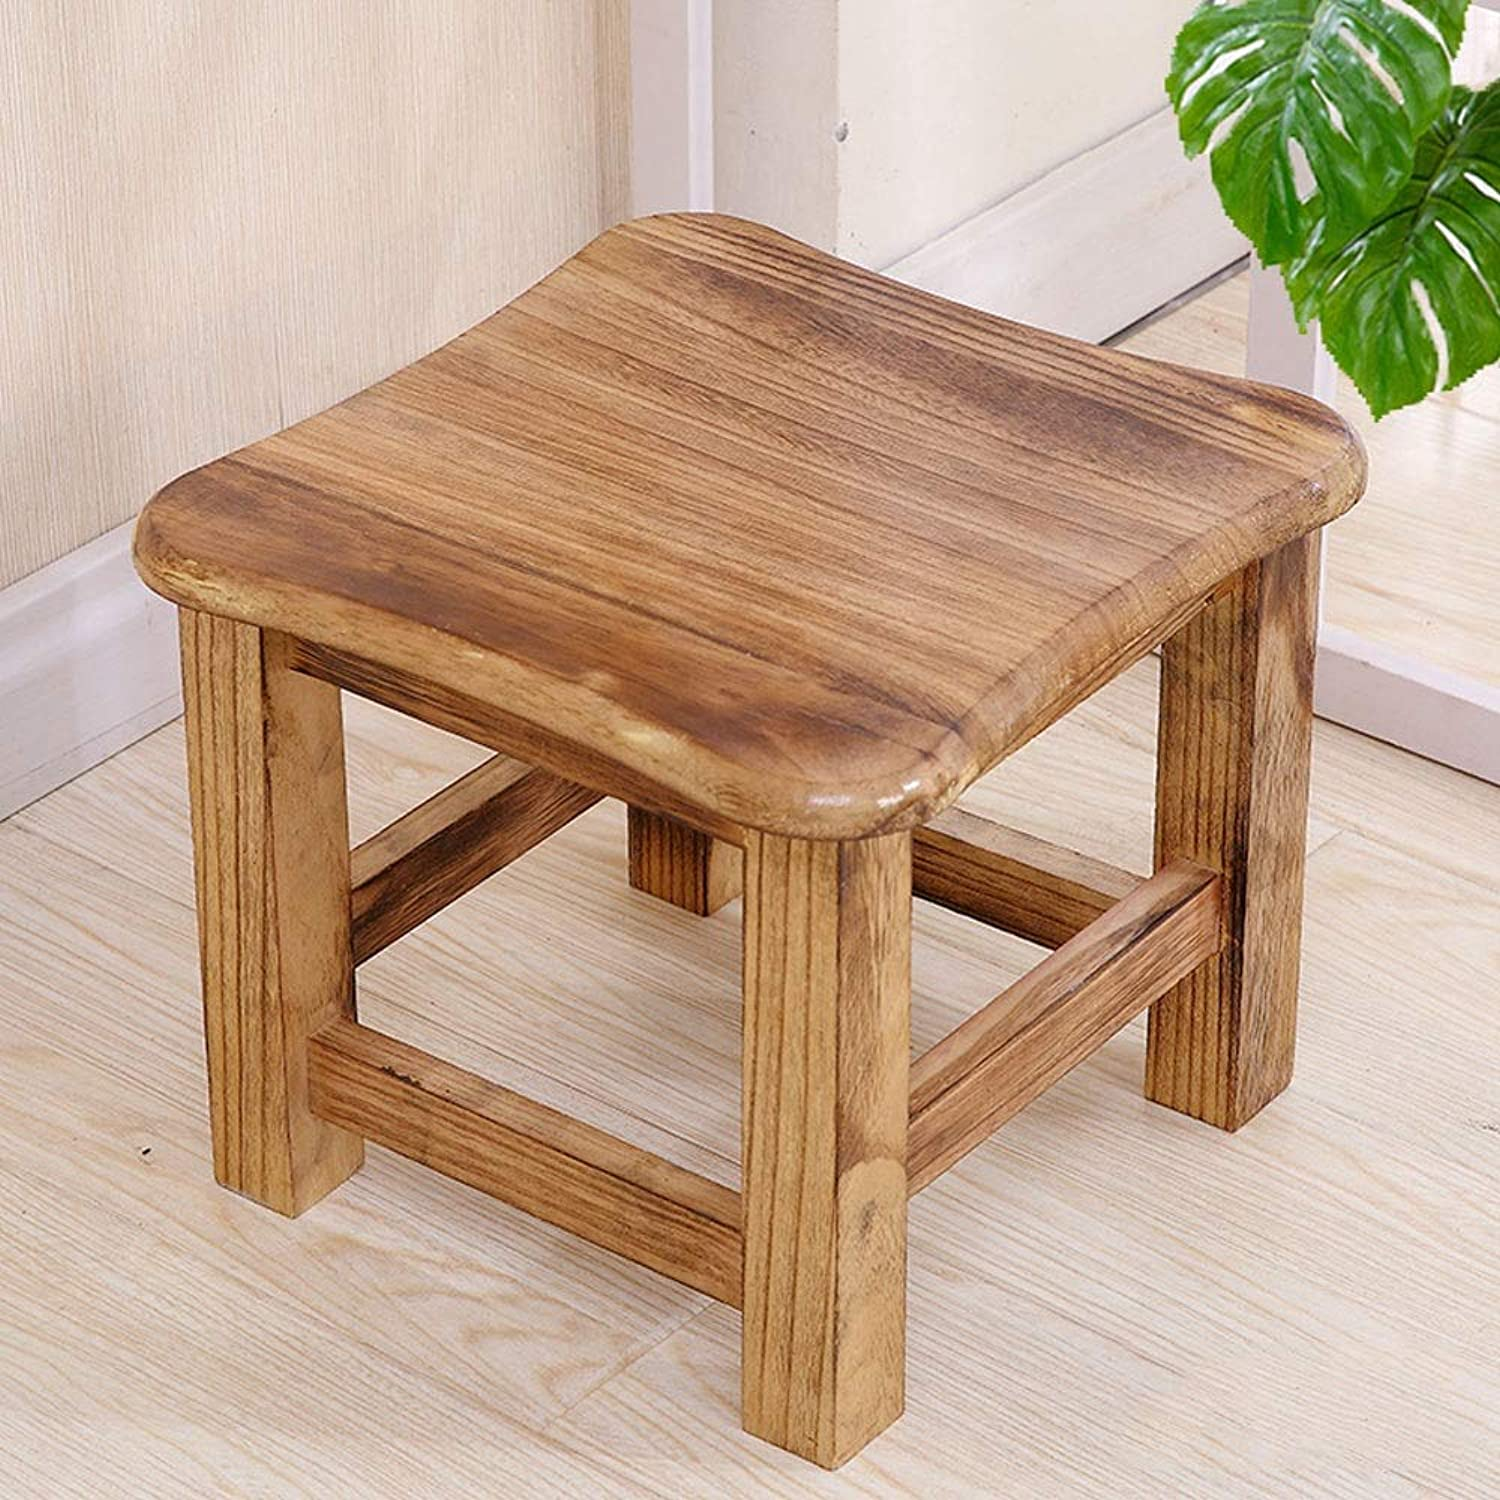 Home Stool Fashion Solid Wood Creative Bench Small Square Stool Short shoes Bench Living Room Simple Modern Wood Coffee Table Stool (Style   A)